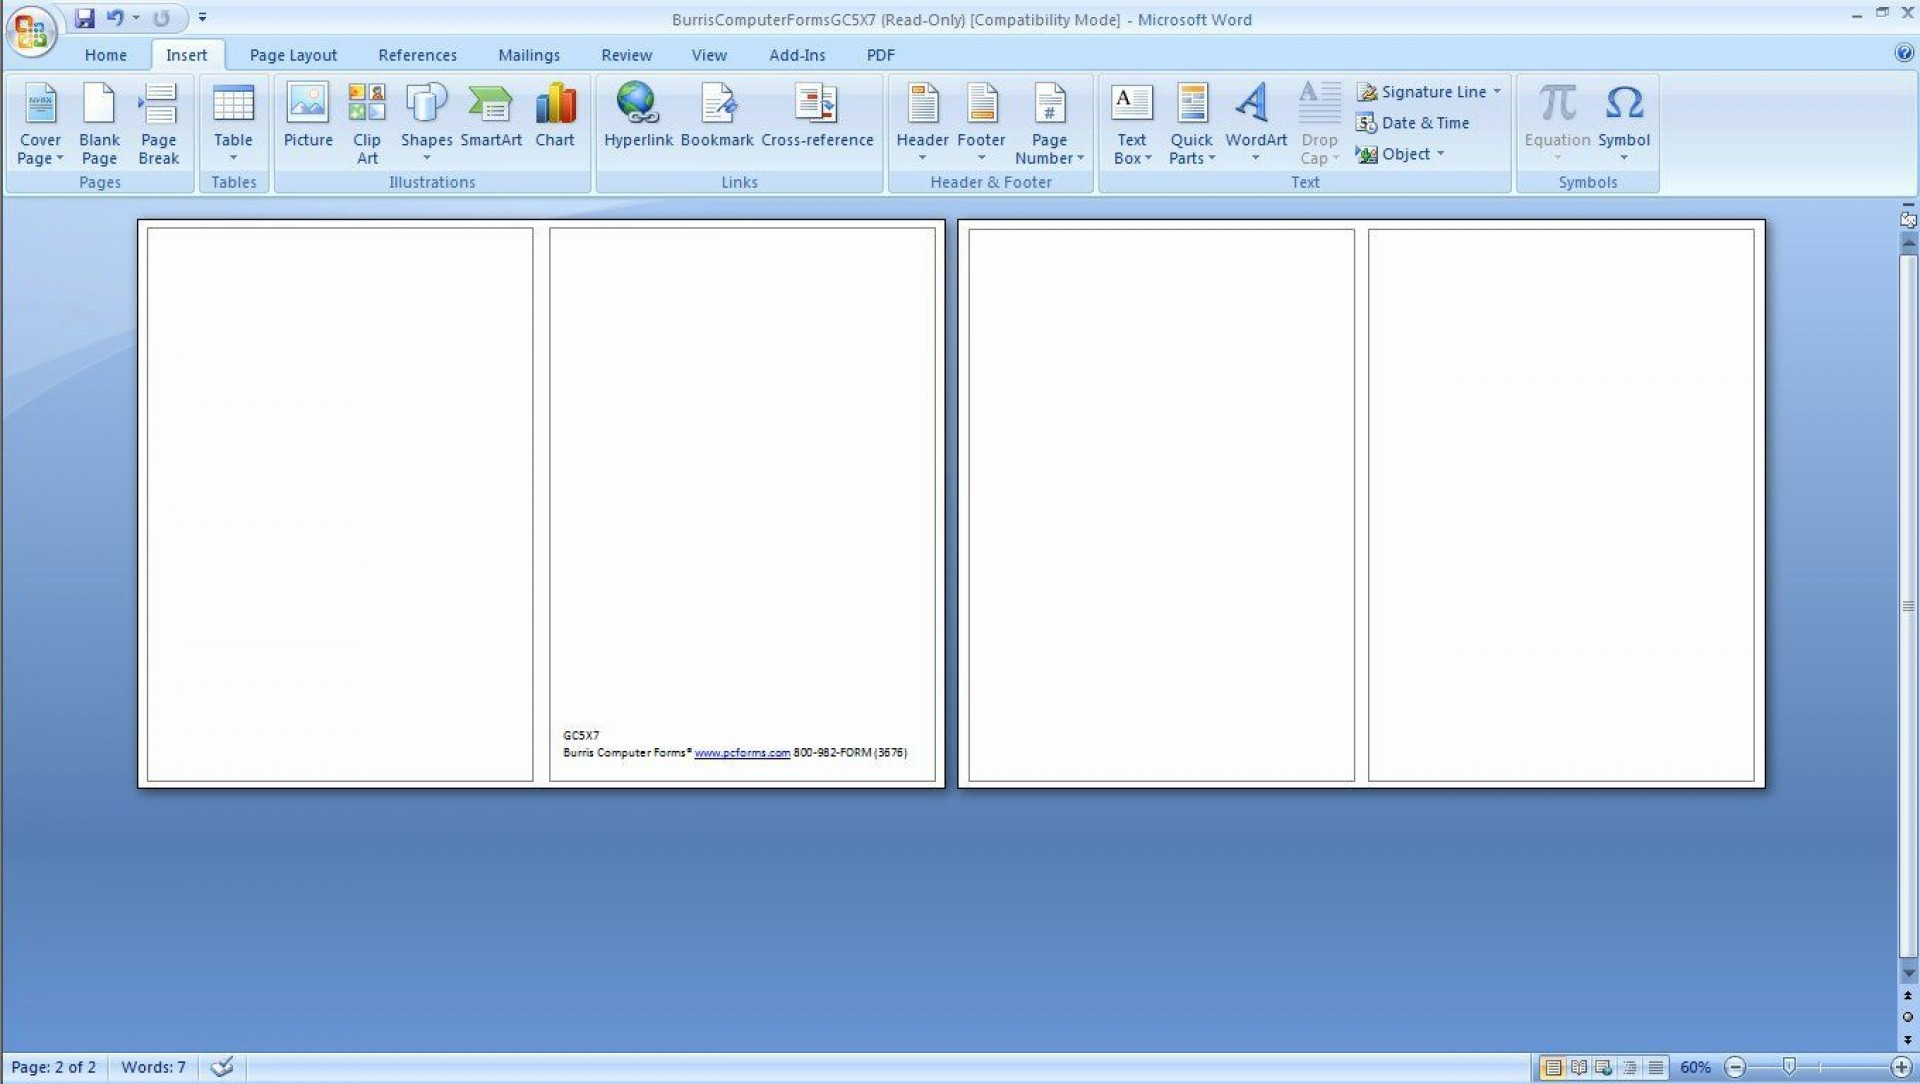 003 Wonderful Microsoft Word Greeting Card Template Concept  2003 Birthday Download1920